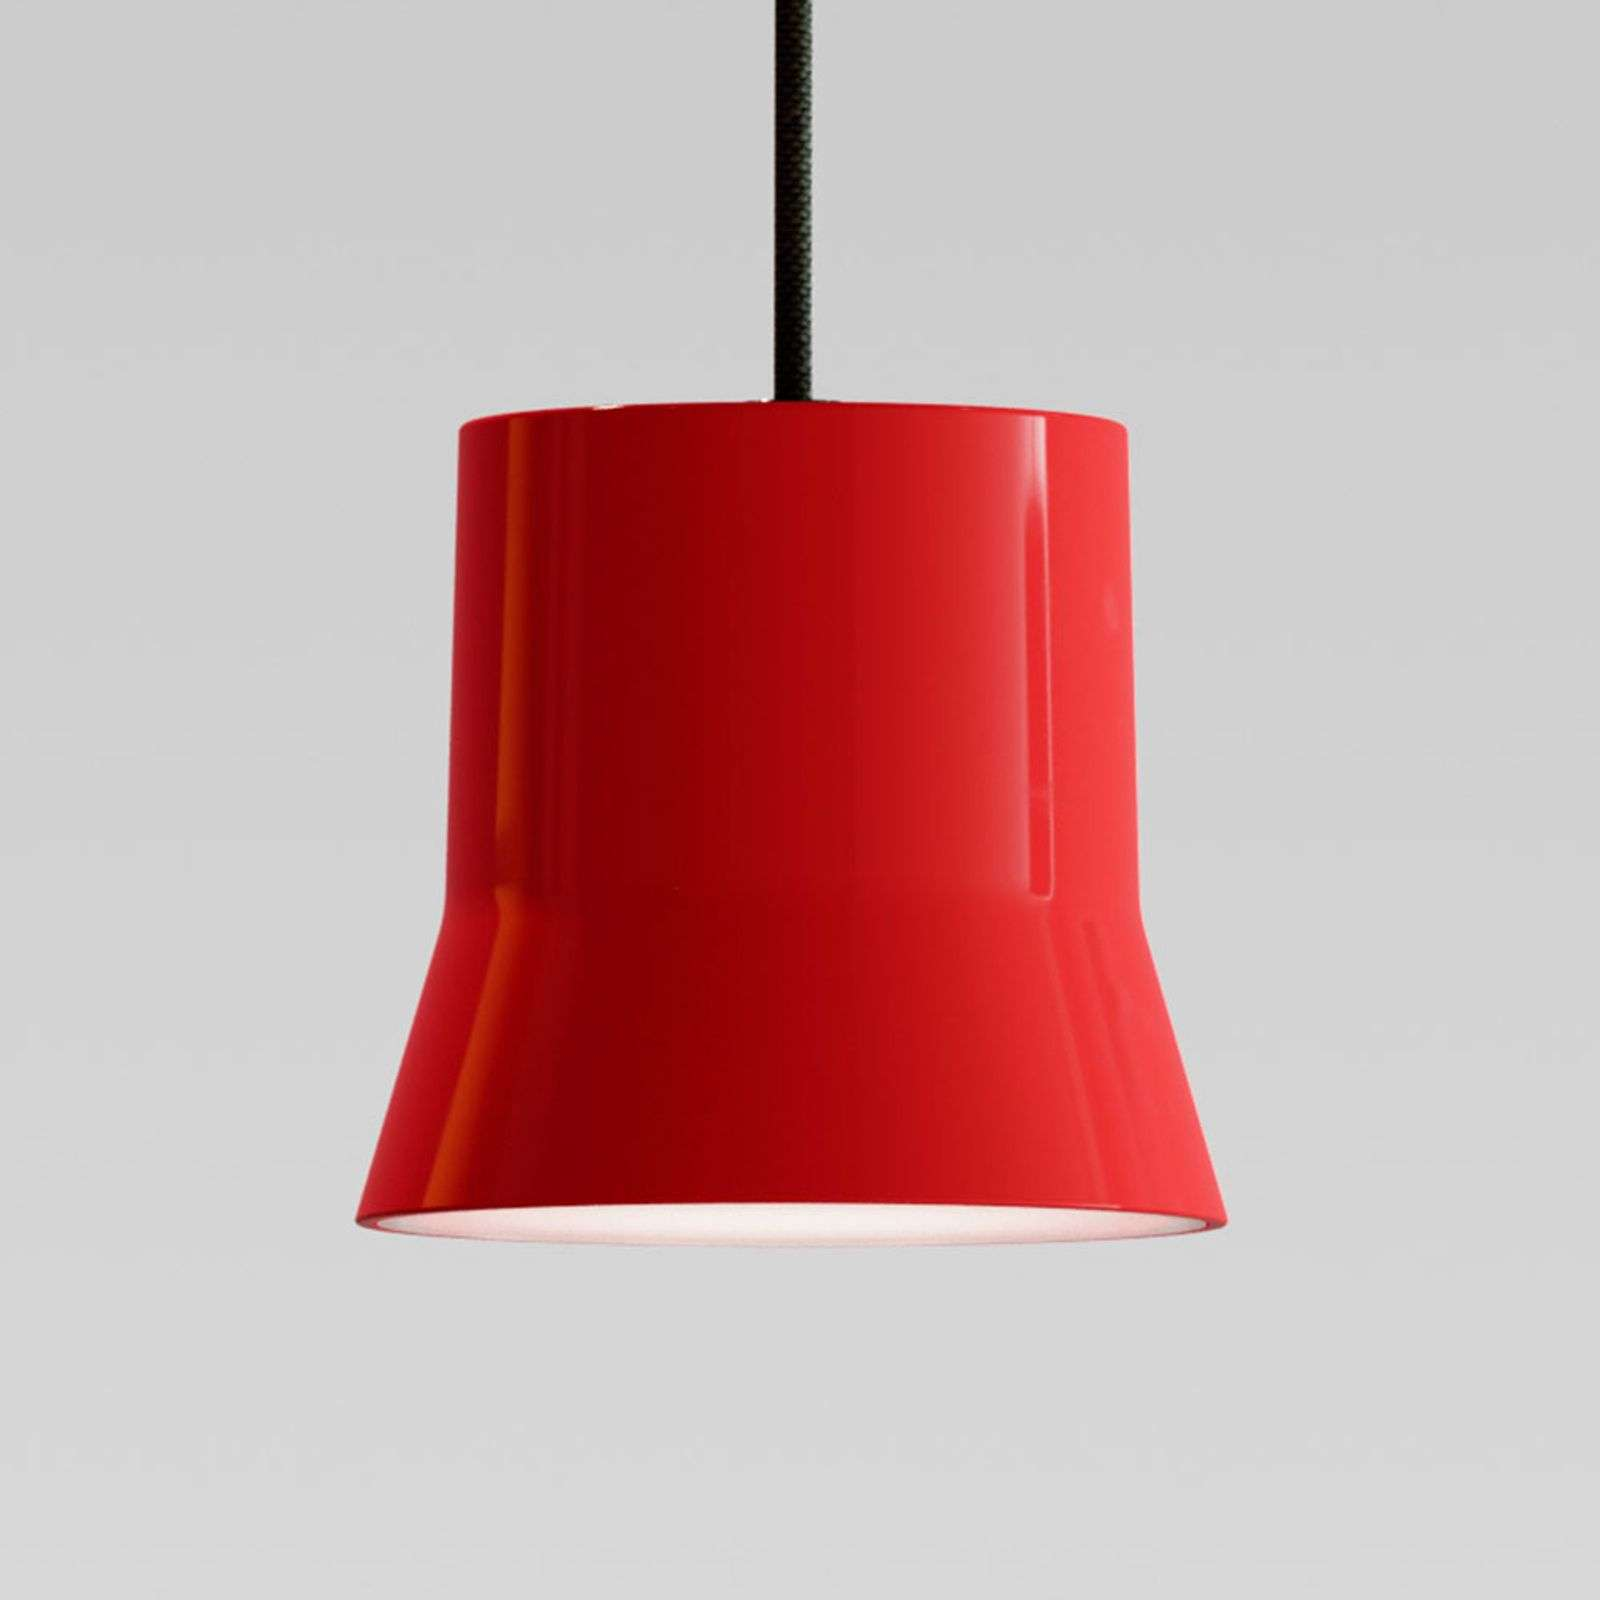 Artemide GIO.light LED hanglamp, rood